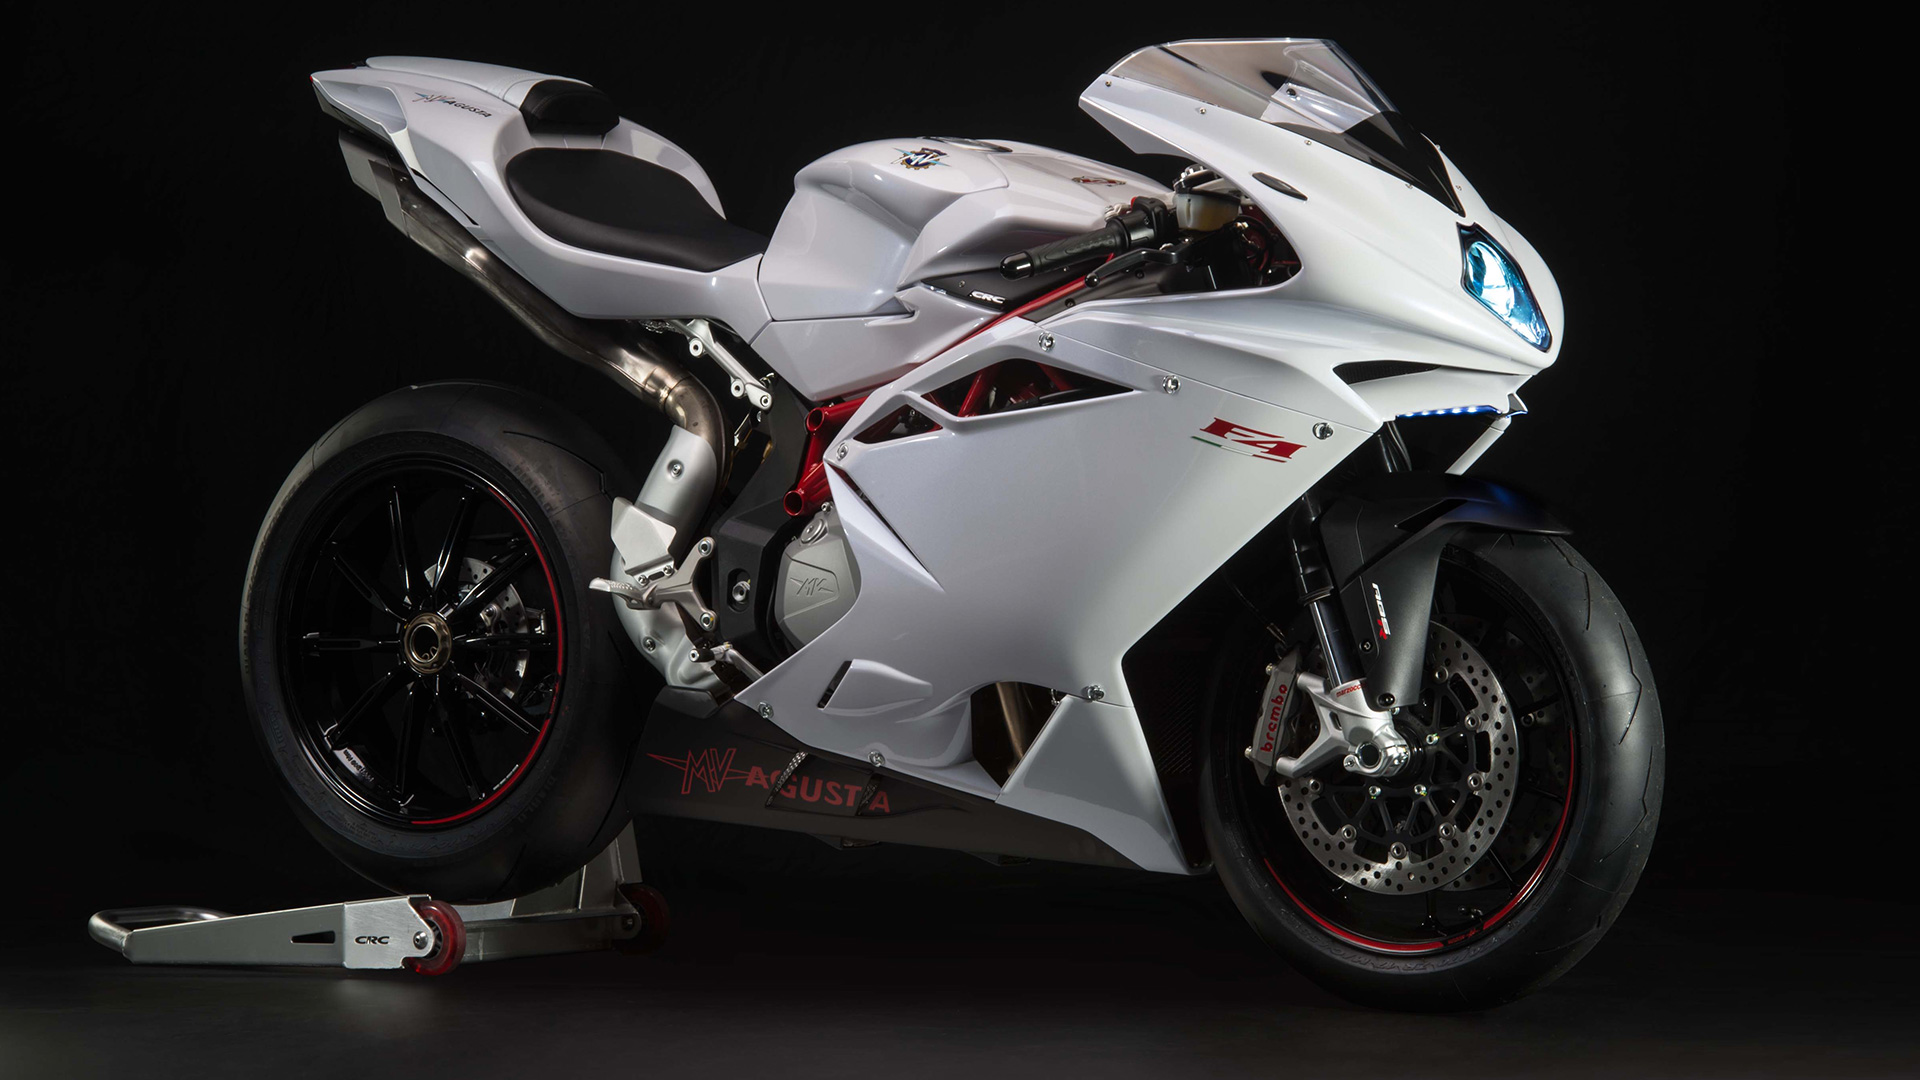 MV Agusta F4 2017 - Price, Mileage, Reviews, Specification, Gallery ...